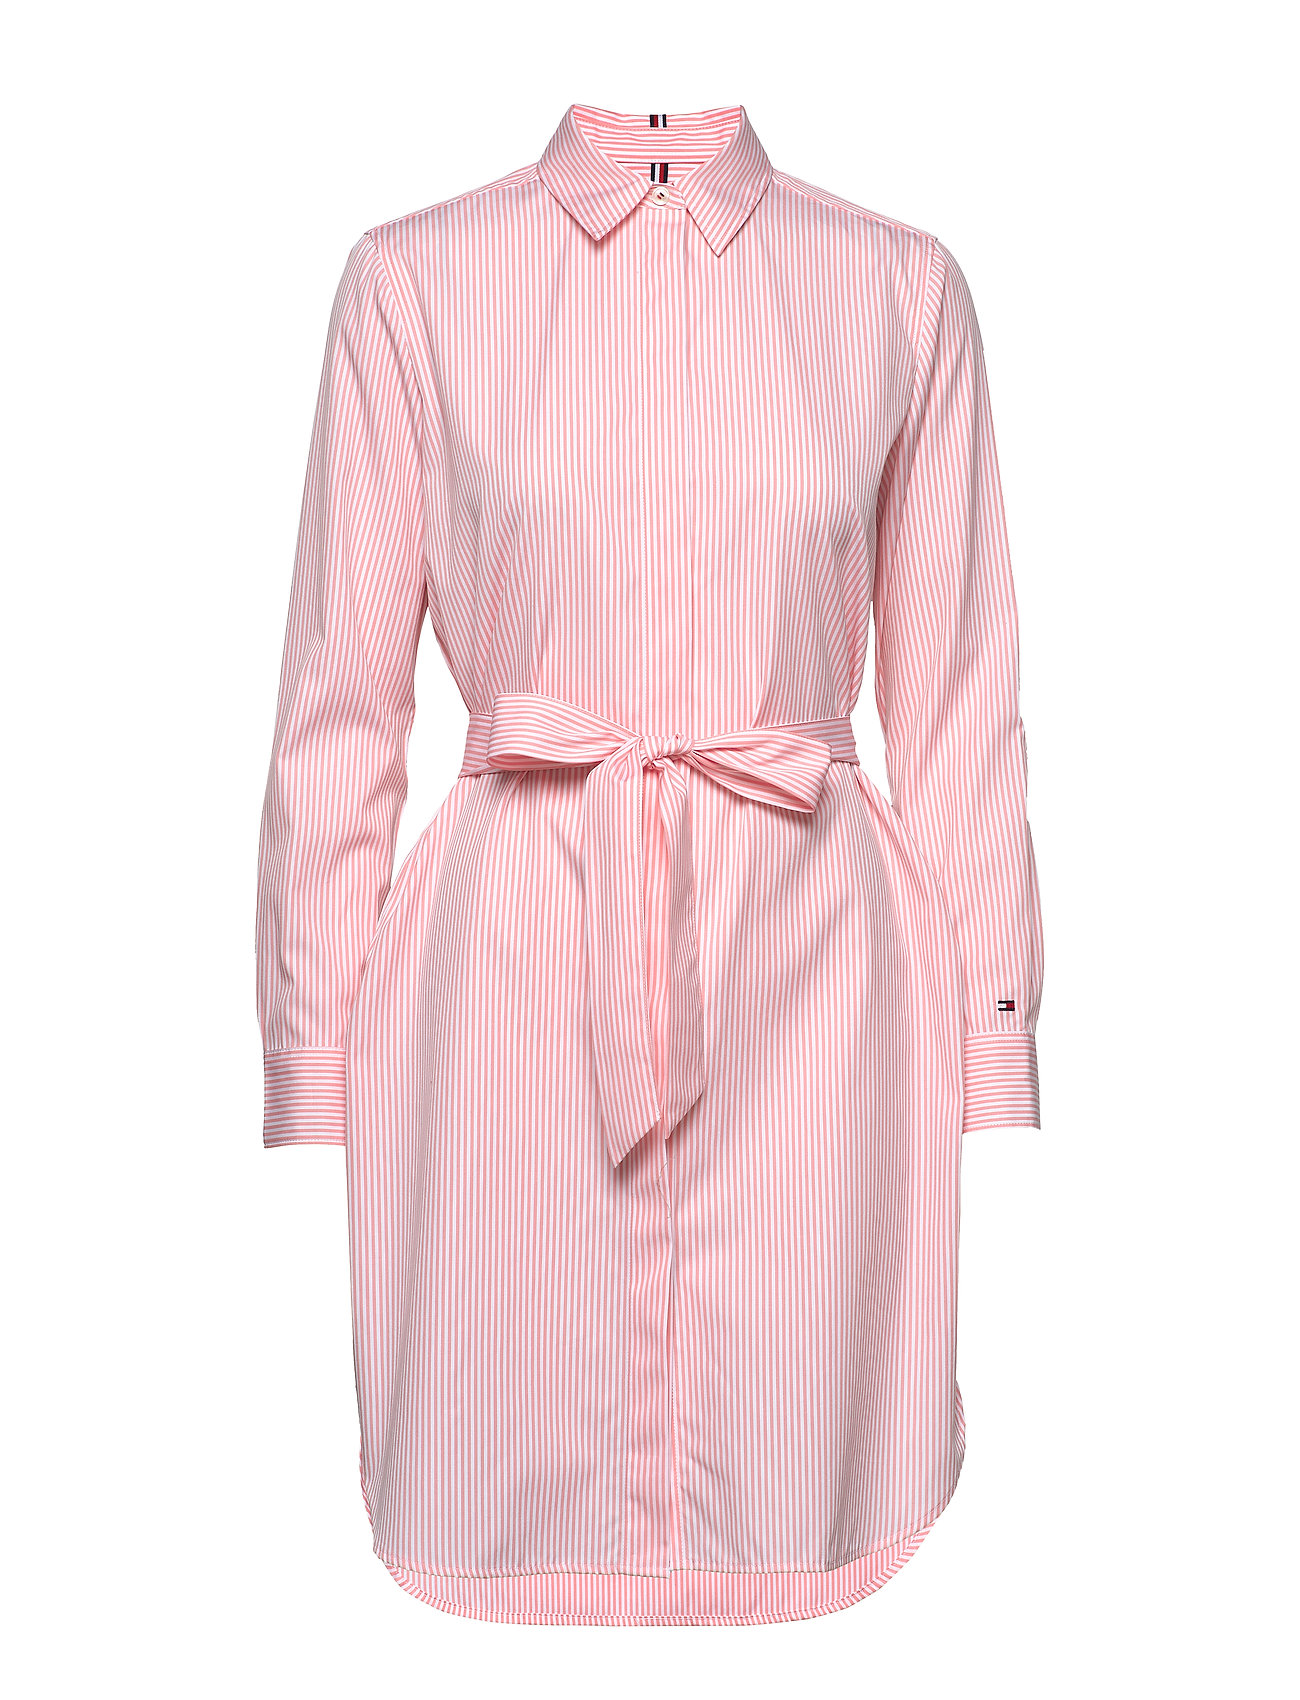 Tommy Hilfiger TH ESSENTIAL SHIRT DRESS LS - YD WE STP / PINK GRAPEFRUIT